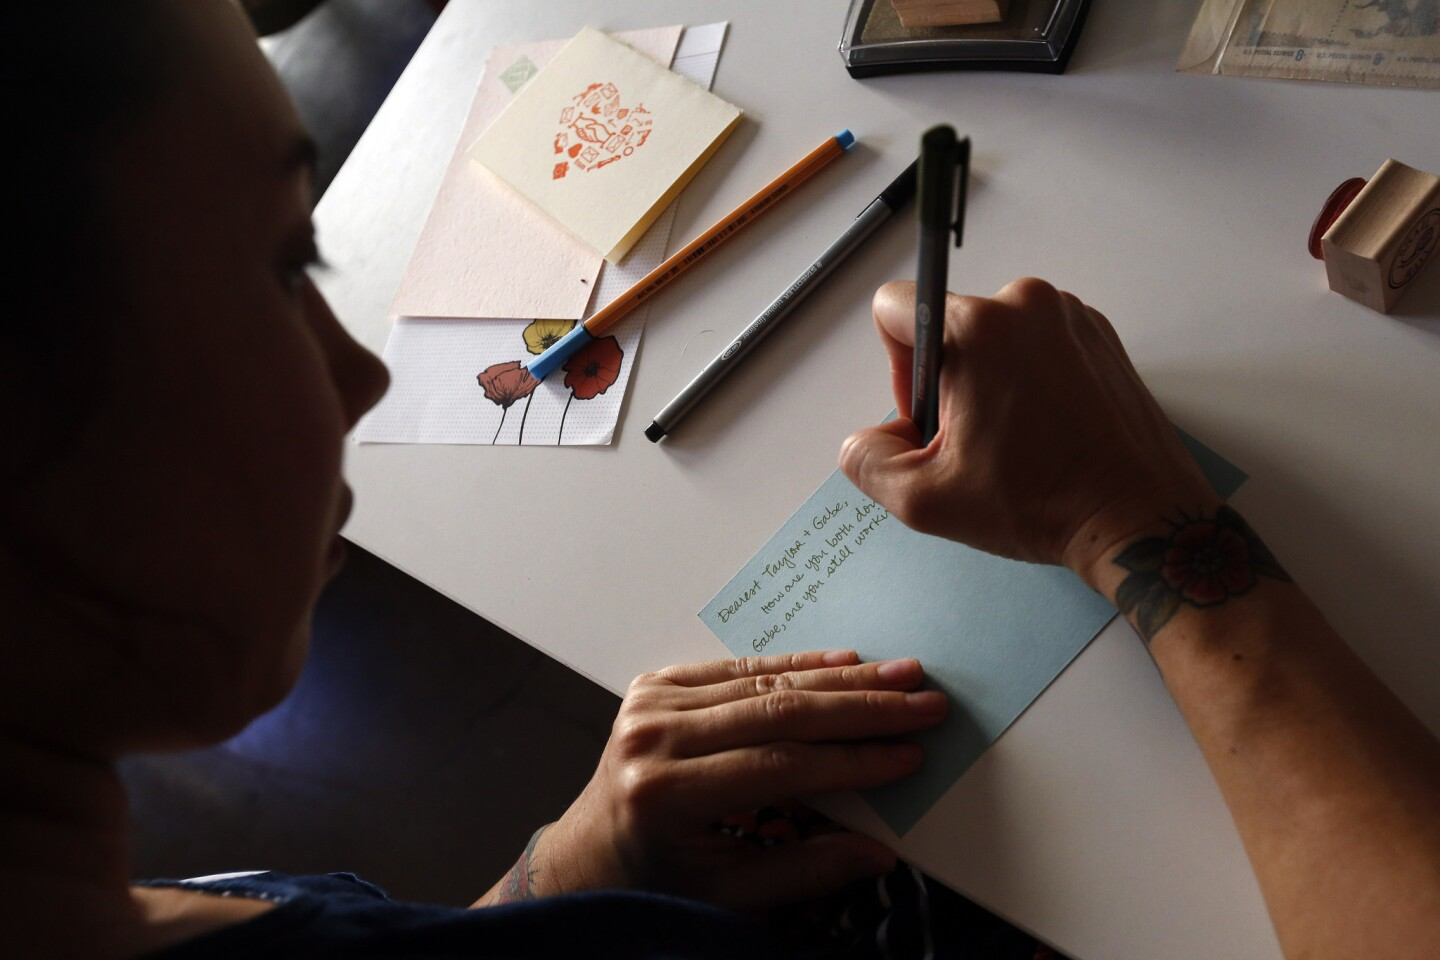 Erika Mulan writes a letter to a pen pal in Atlanta during the monthly gathering of the L.A. Pen Pal Club at Paper Pastries Atelier in downtown Los Angeles.